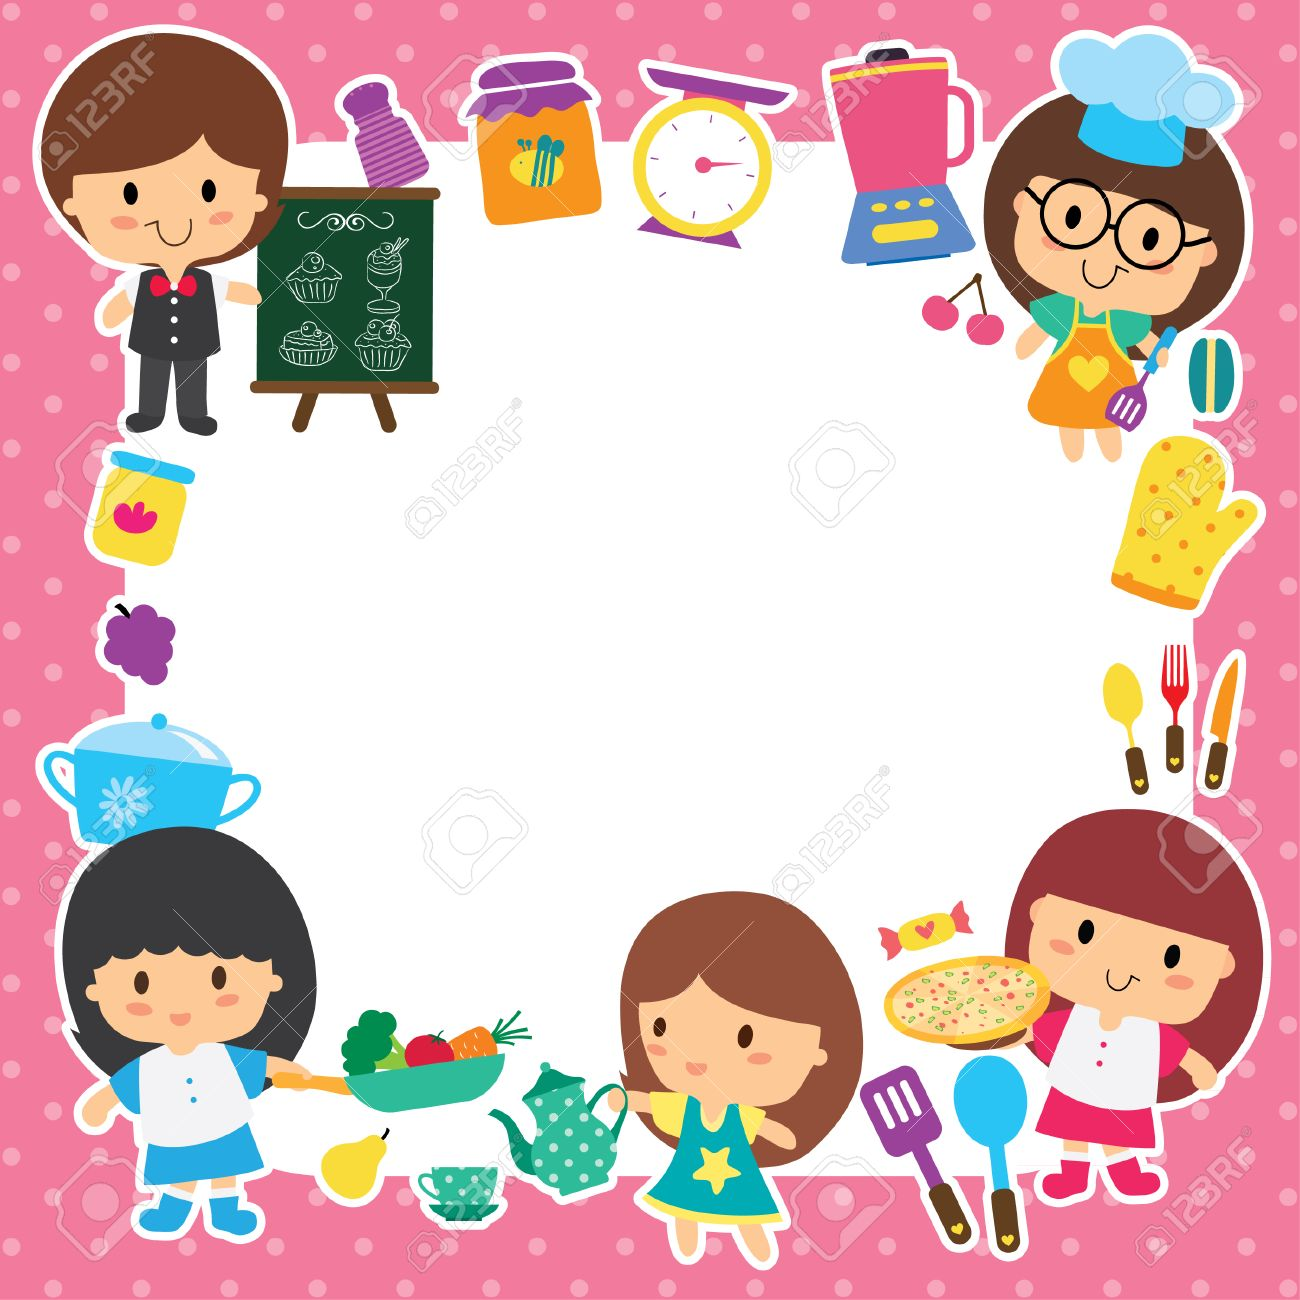 food preparation and kids layout design royalty free cliparts